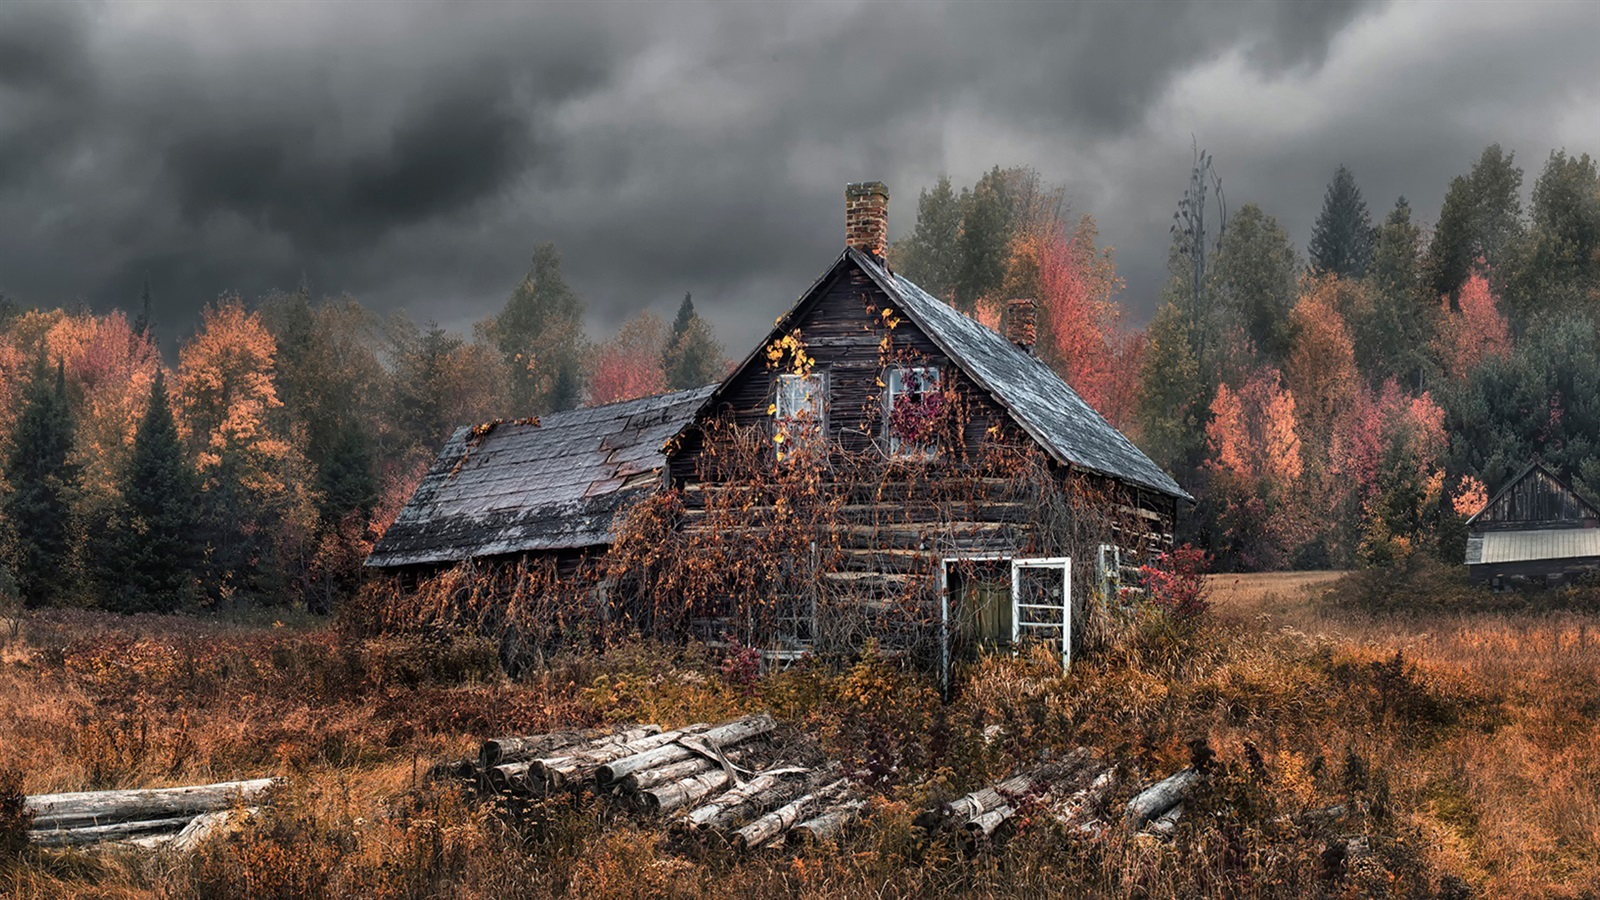 Download wallpaper 1600x900 old house autumn forest hd for Classic house wallpaper